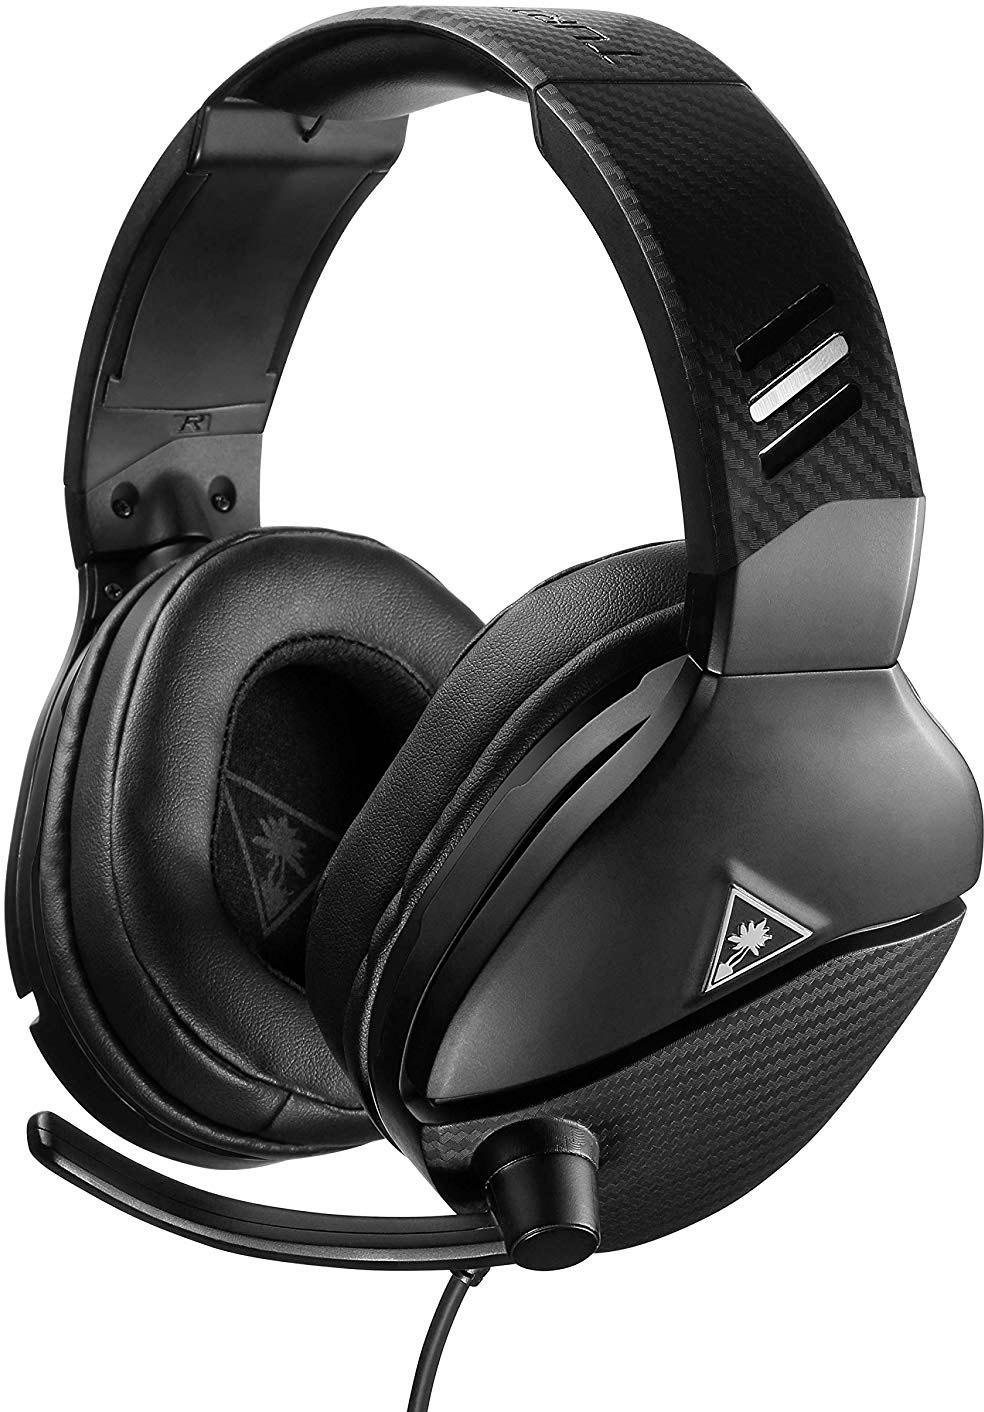 »Atlas One PC« Gaming-Headset